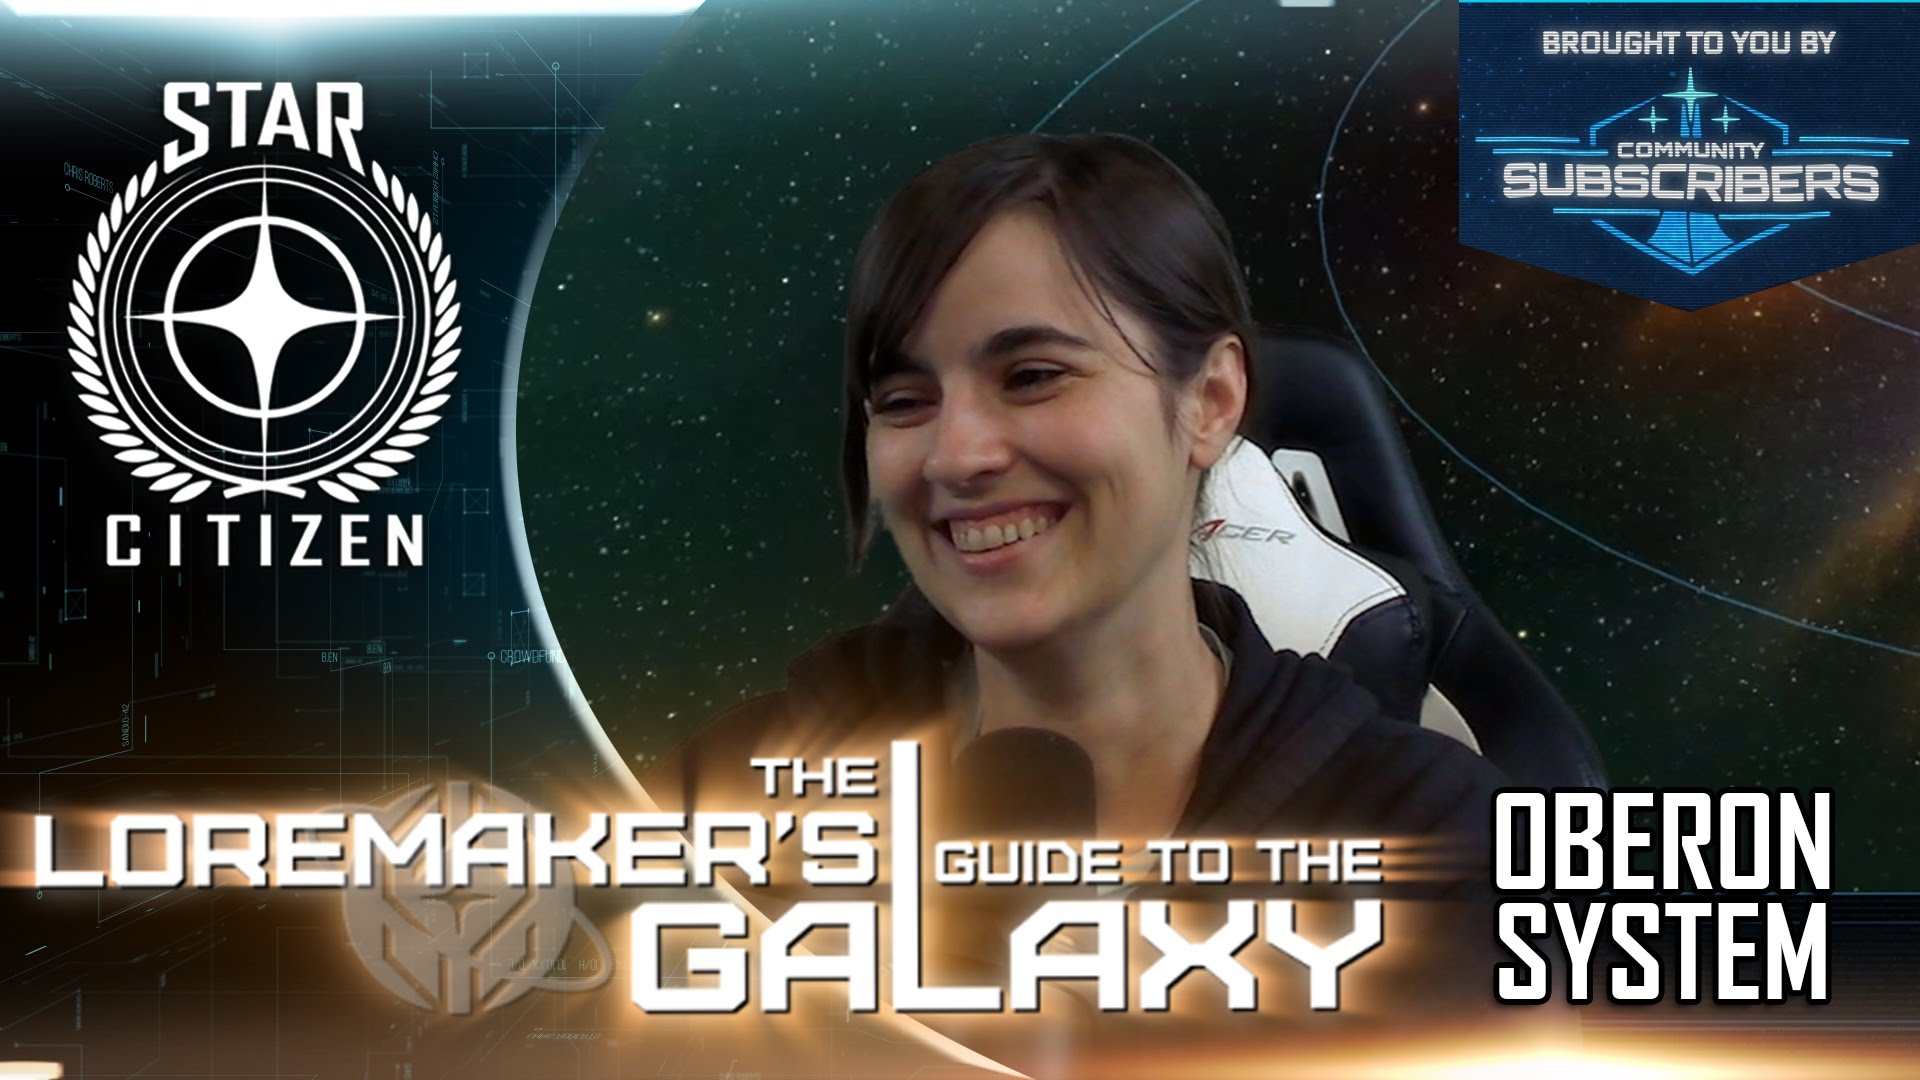 Star Citizen: Loremaker's Guide to the Galaxy - Oberon System